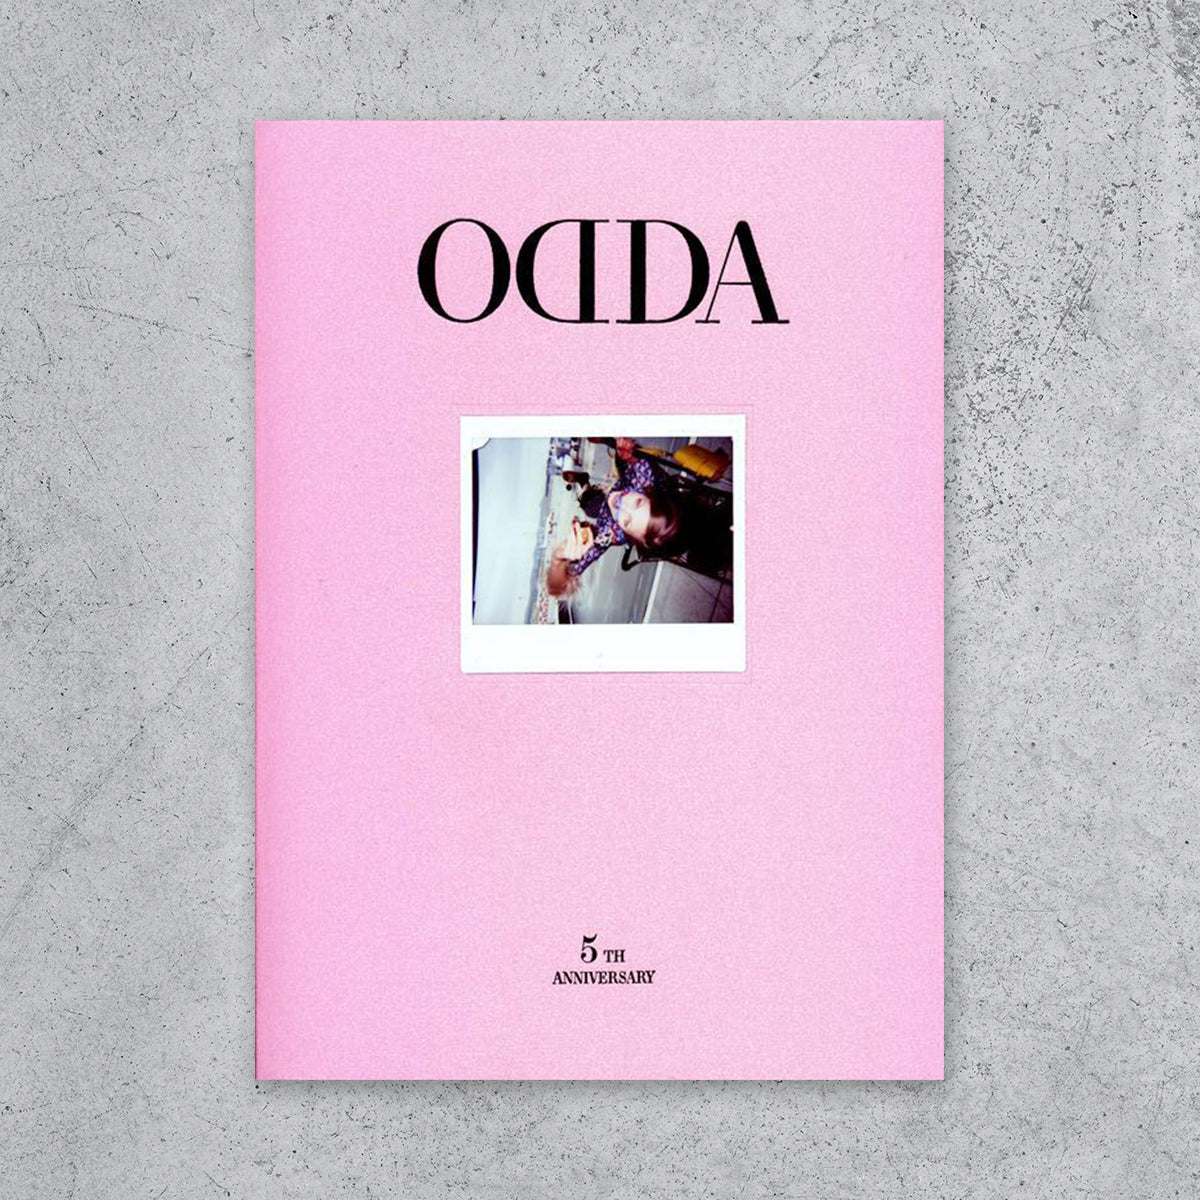 Odda Magazine - 5th Anniversary